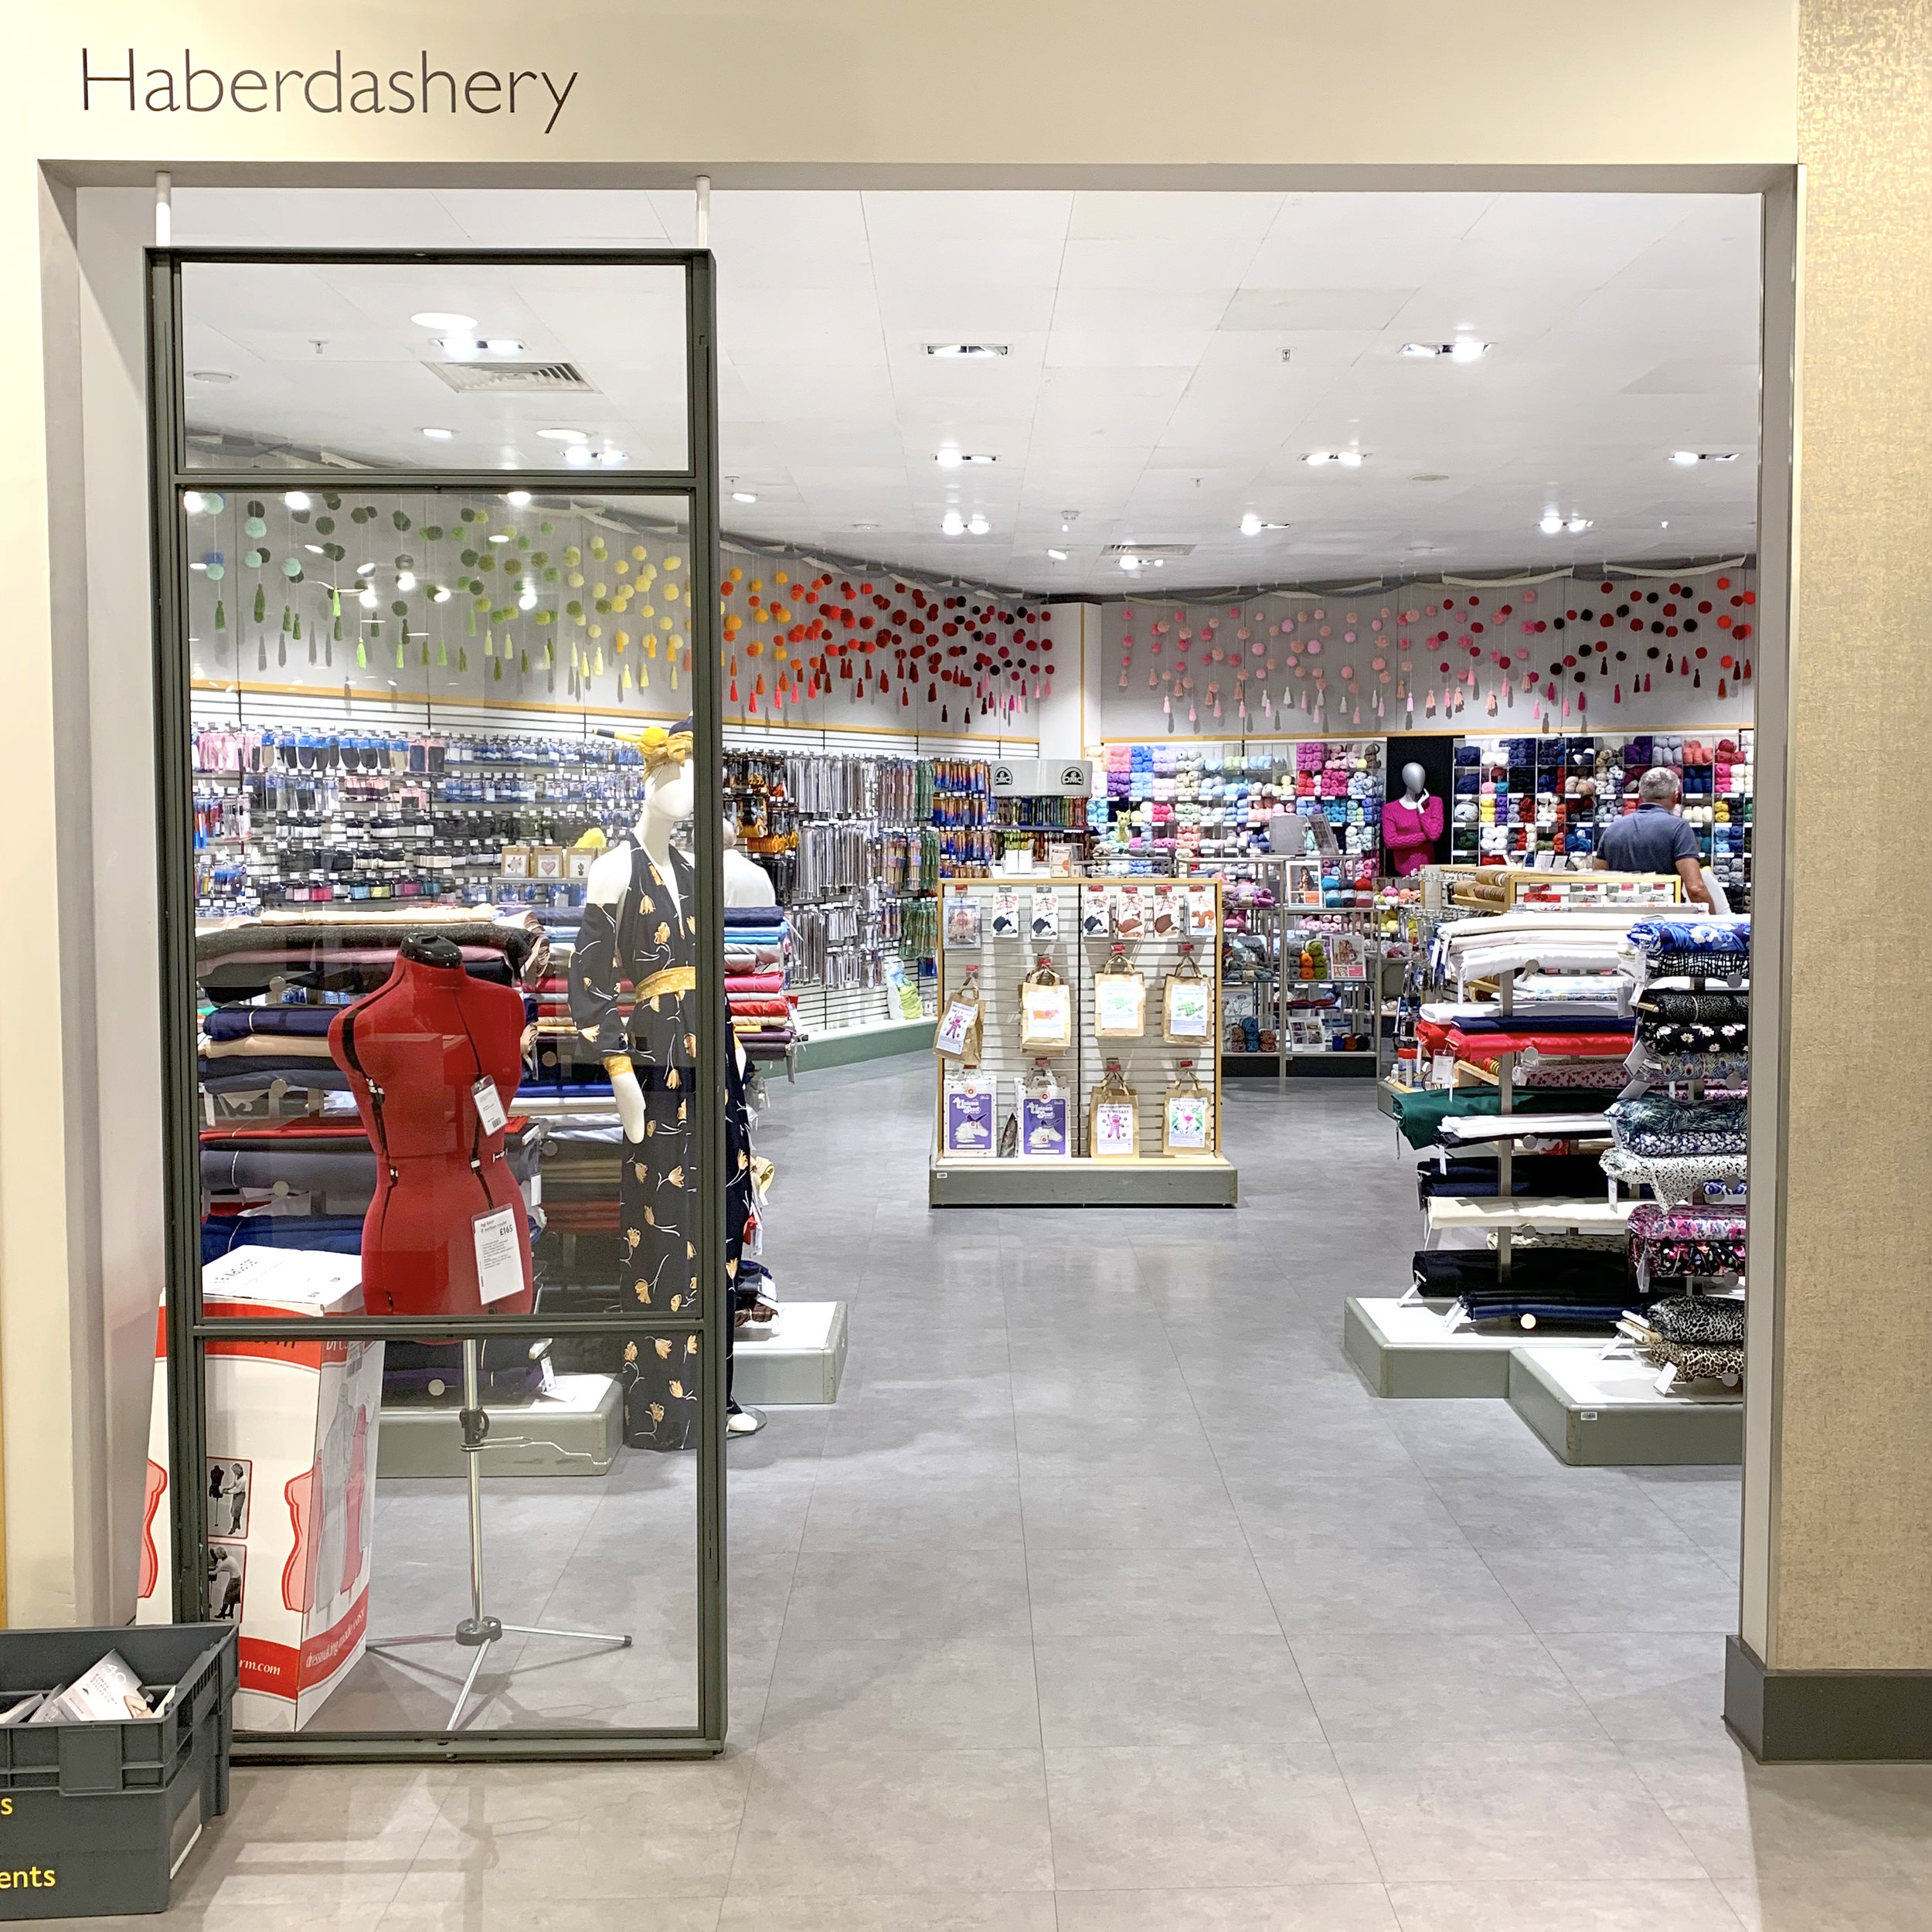 The Haberdashery department is on the Women's Accessories floor.